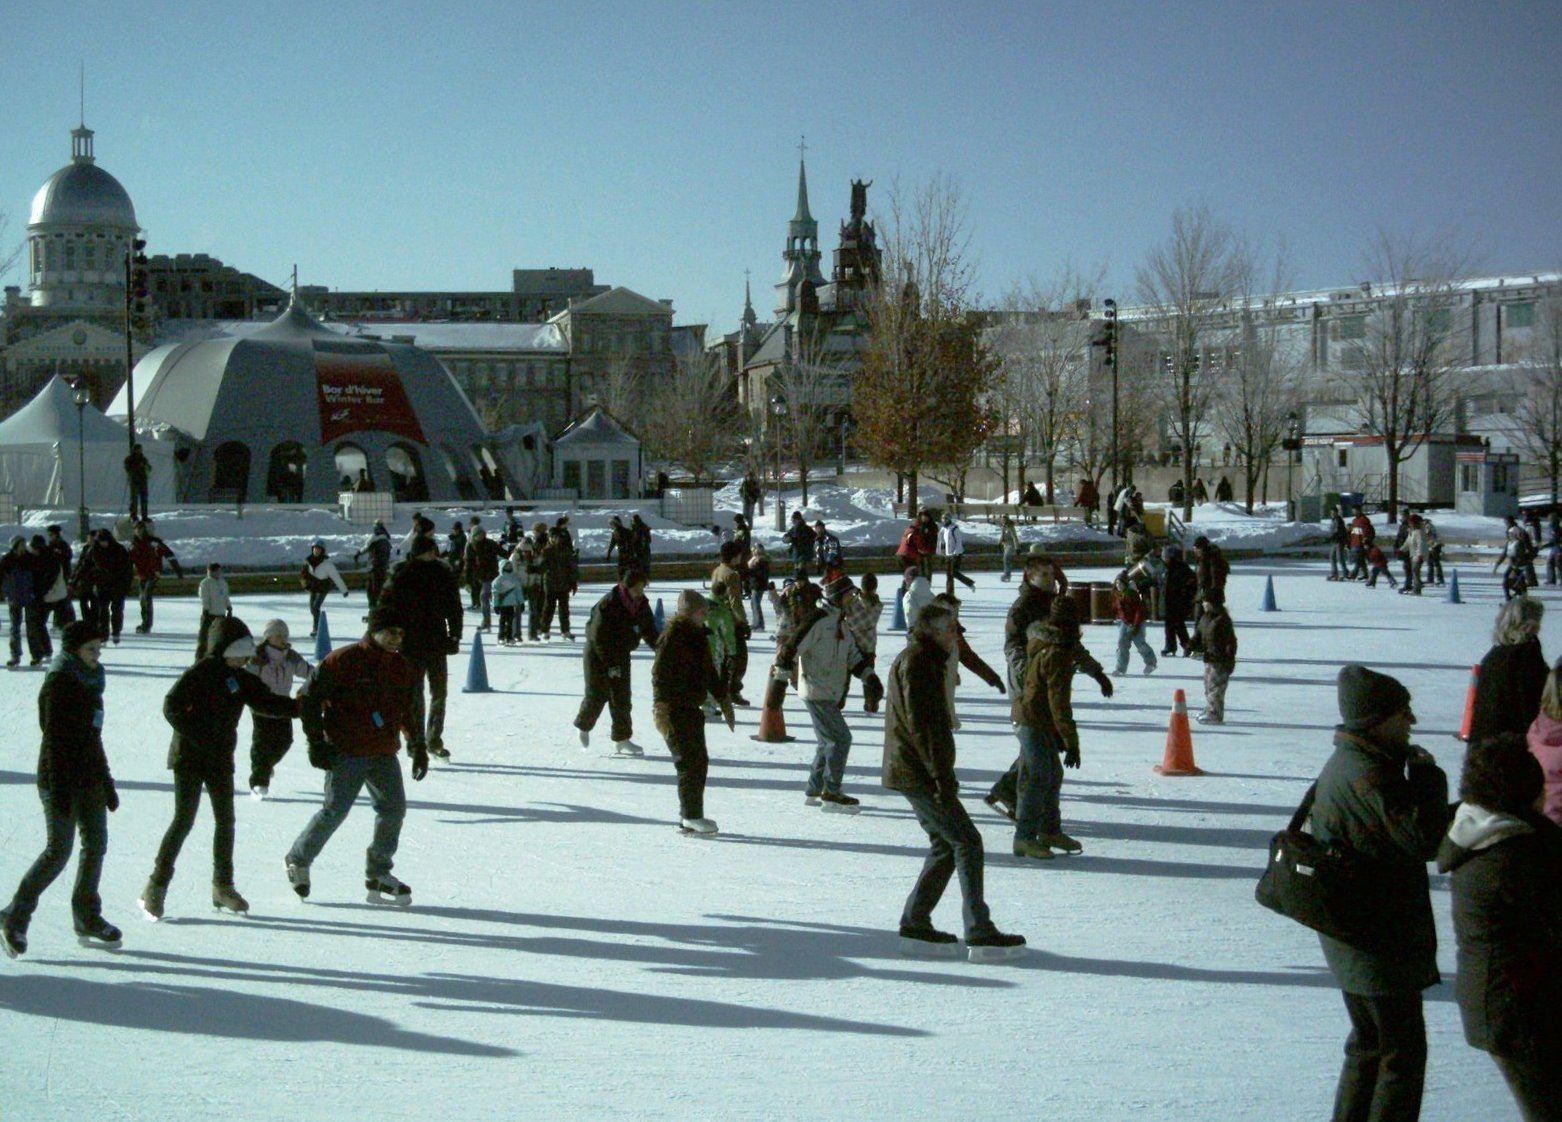 Vieux-Port Montreal Patinoire, Montreal, Quebec, Canada